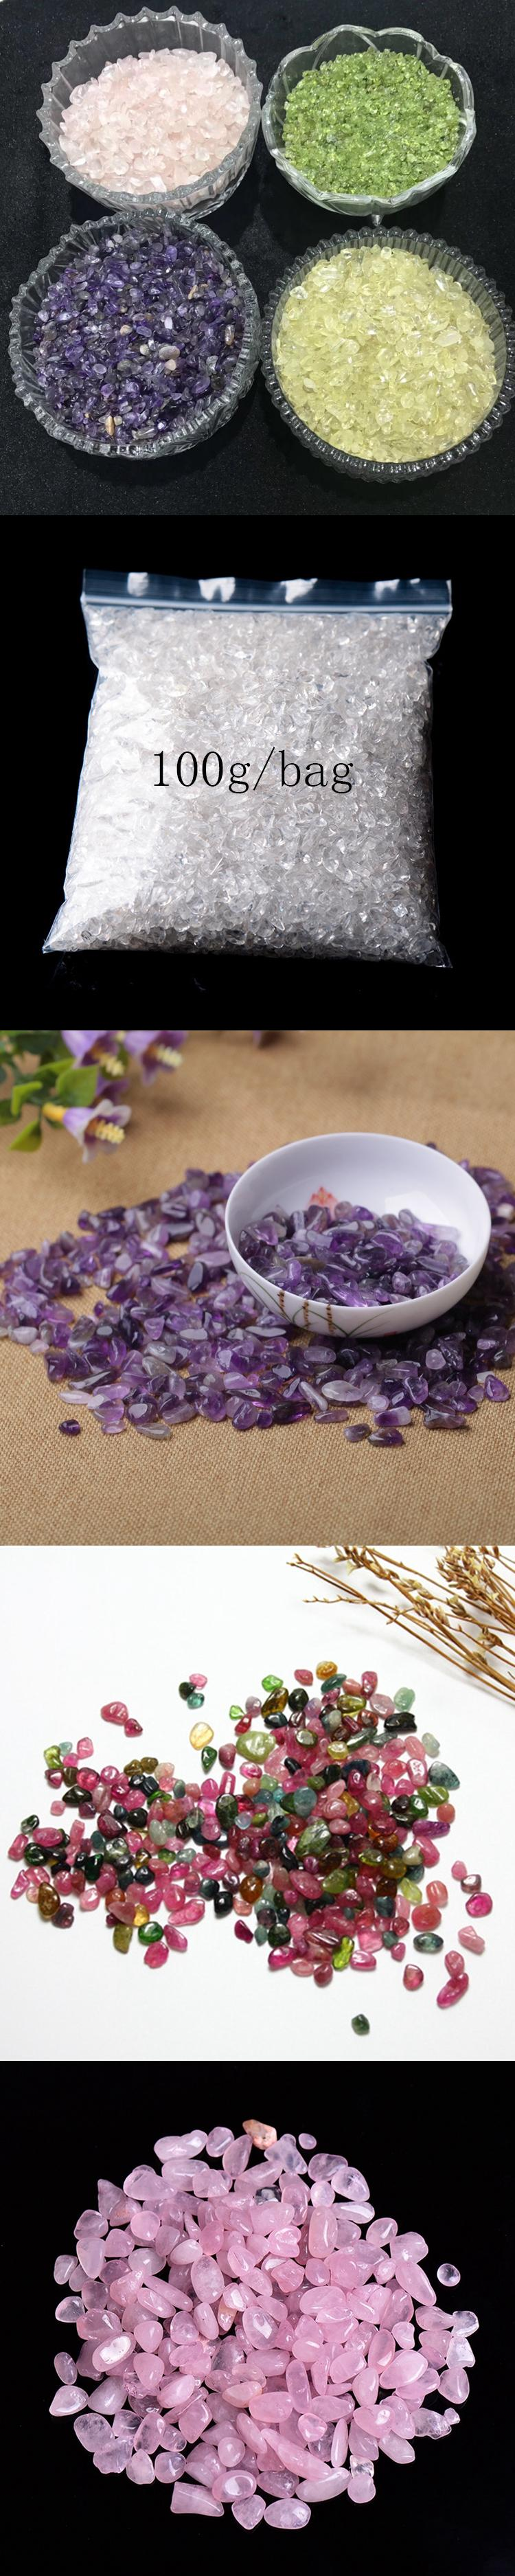 Crystal stones for healing natural raw crystals gemstone chakar chips pendant necklace jewelry